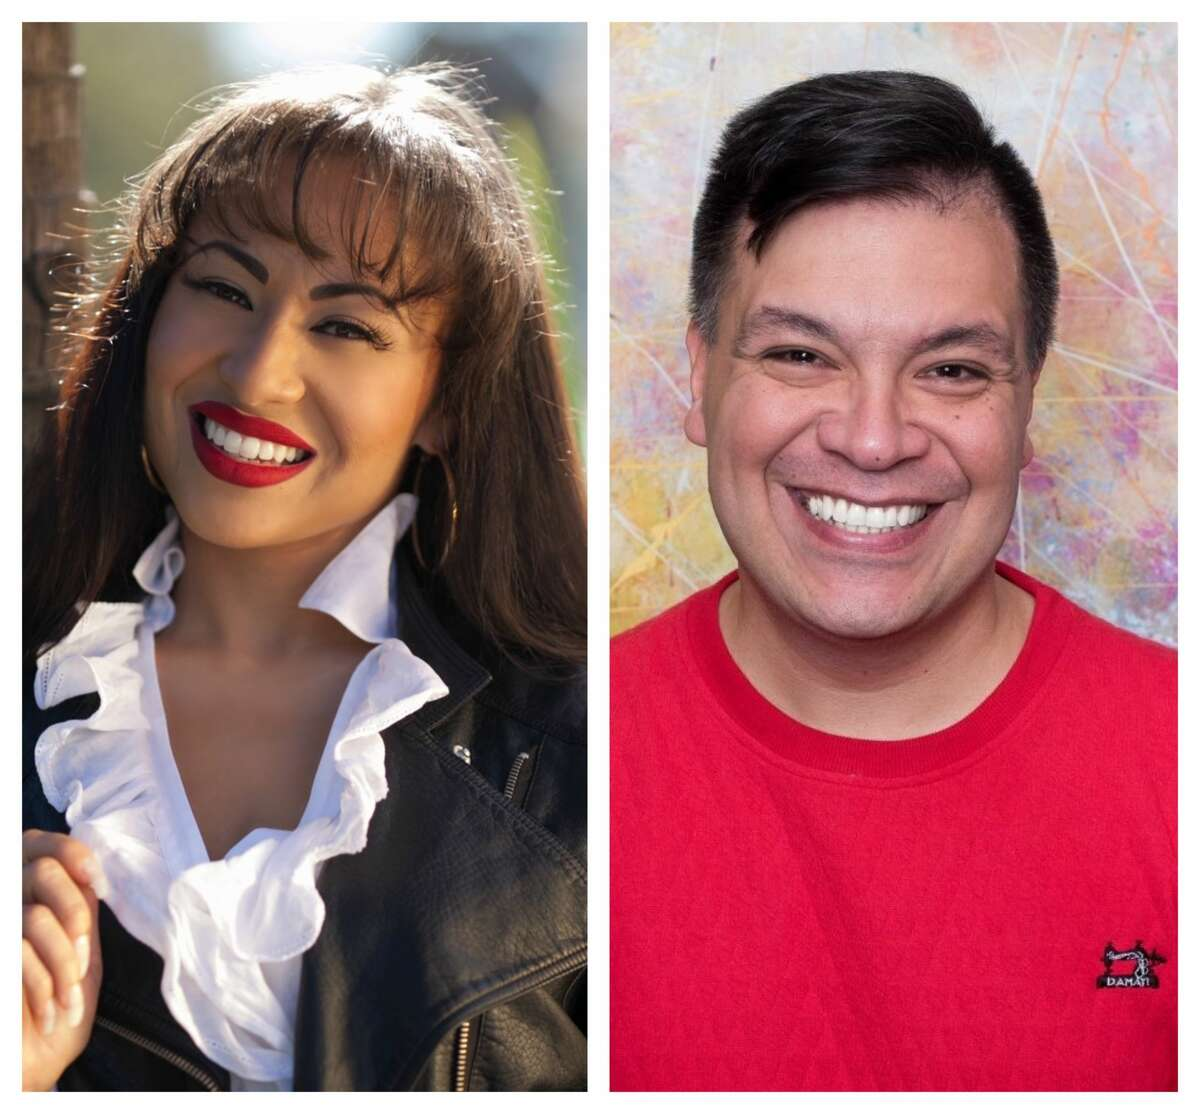 The Joy Hour welcomes Amanda Solis, a recording artist and Selena tribute artist, Houston Chronicle music critic Joey Guerra at 4 pm. Sunday.